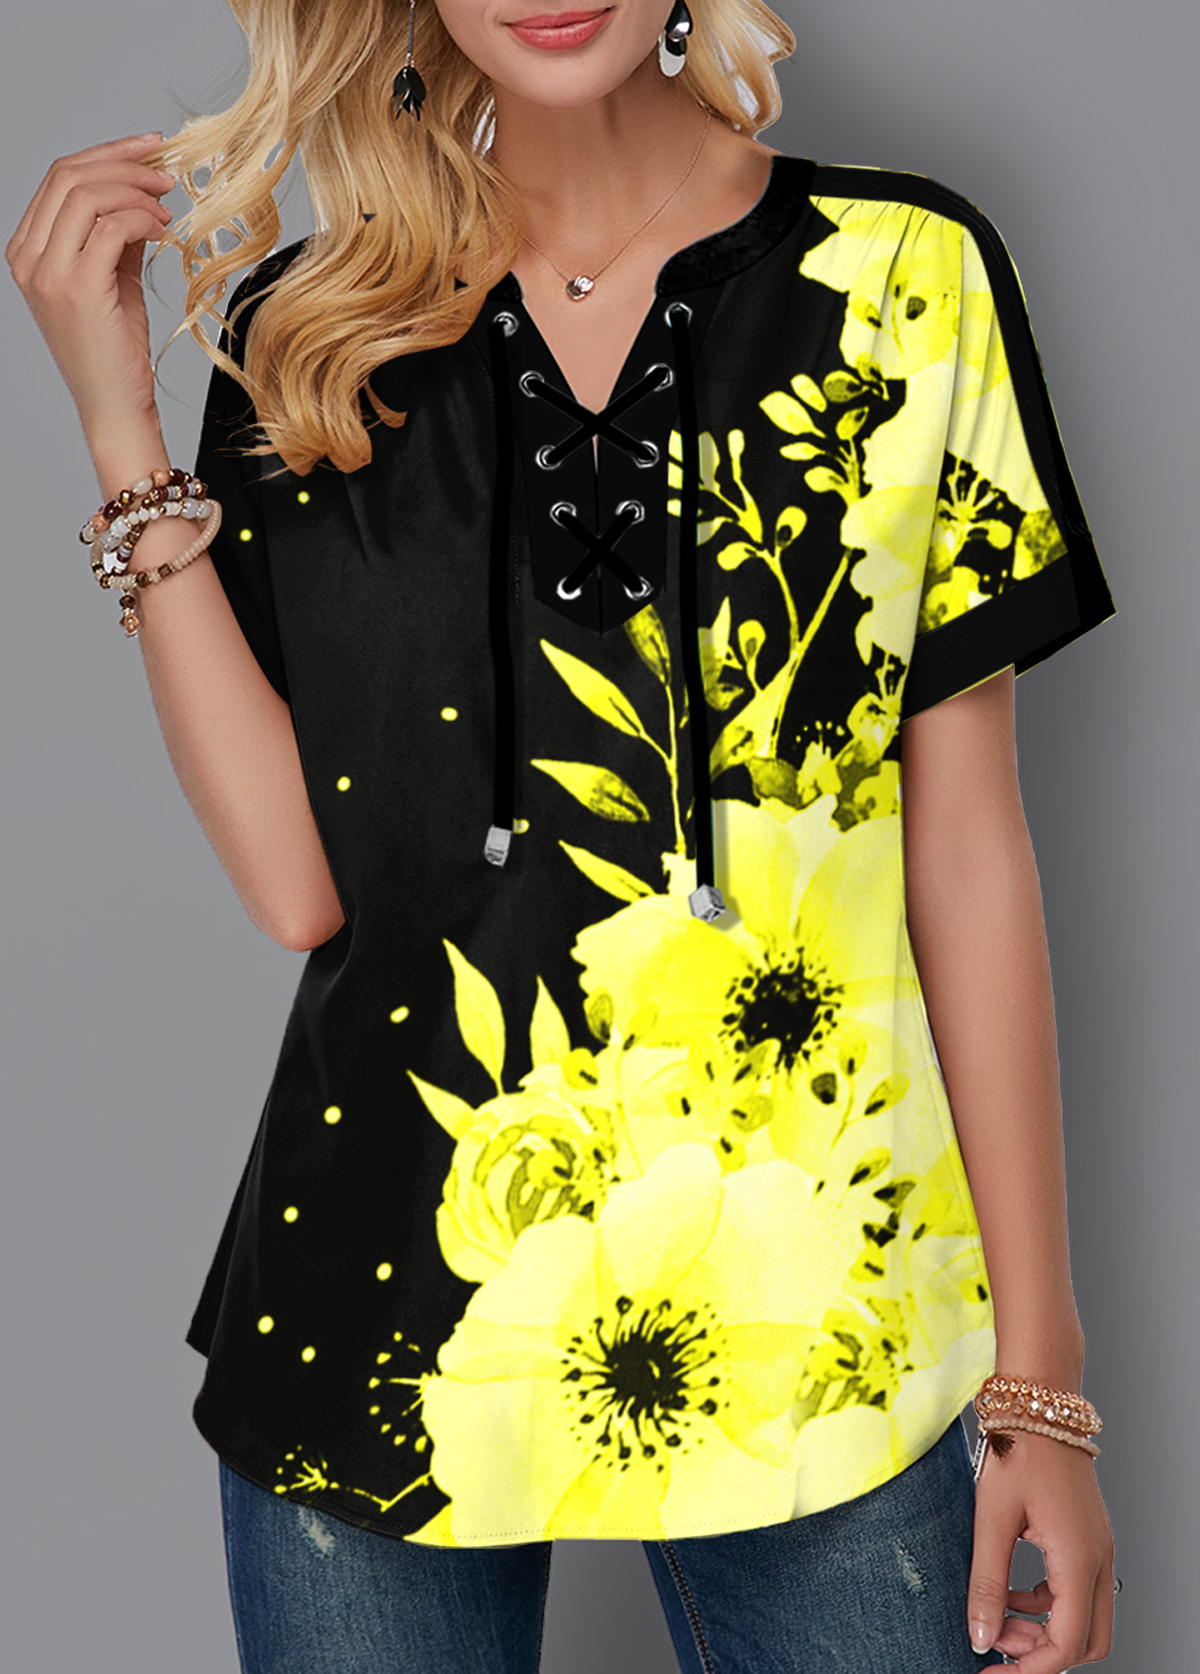 Lace Up Short Sleeve Floral Print Blouse